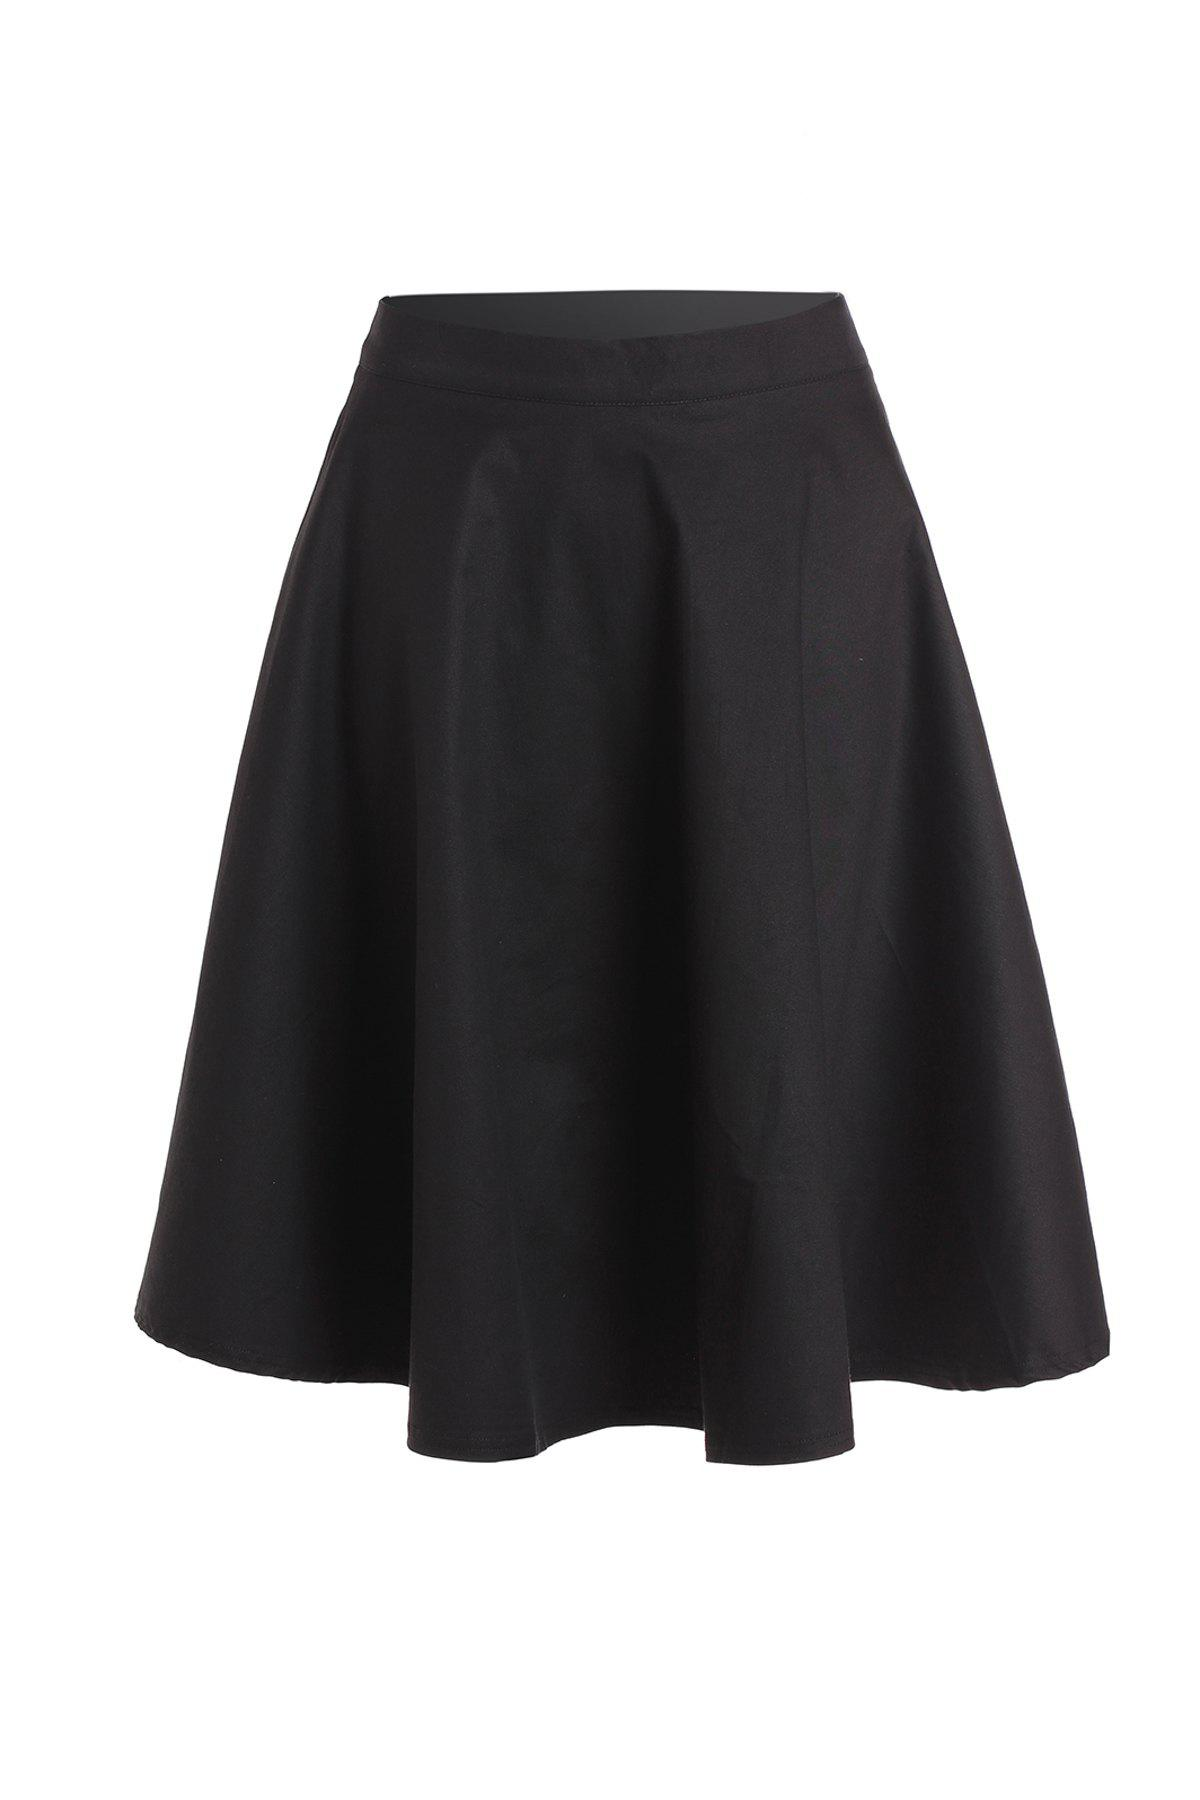 Noble Solid Color High Waist A-Line Ball Skirt For Women - BLACK 2XL